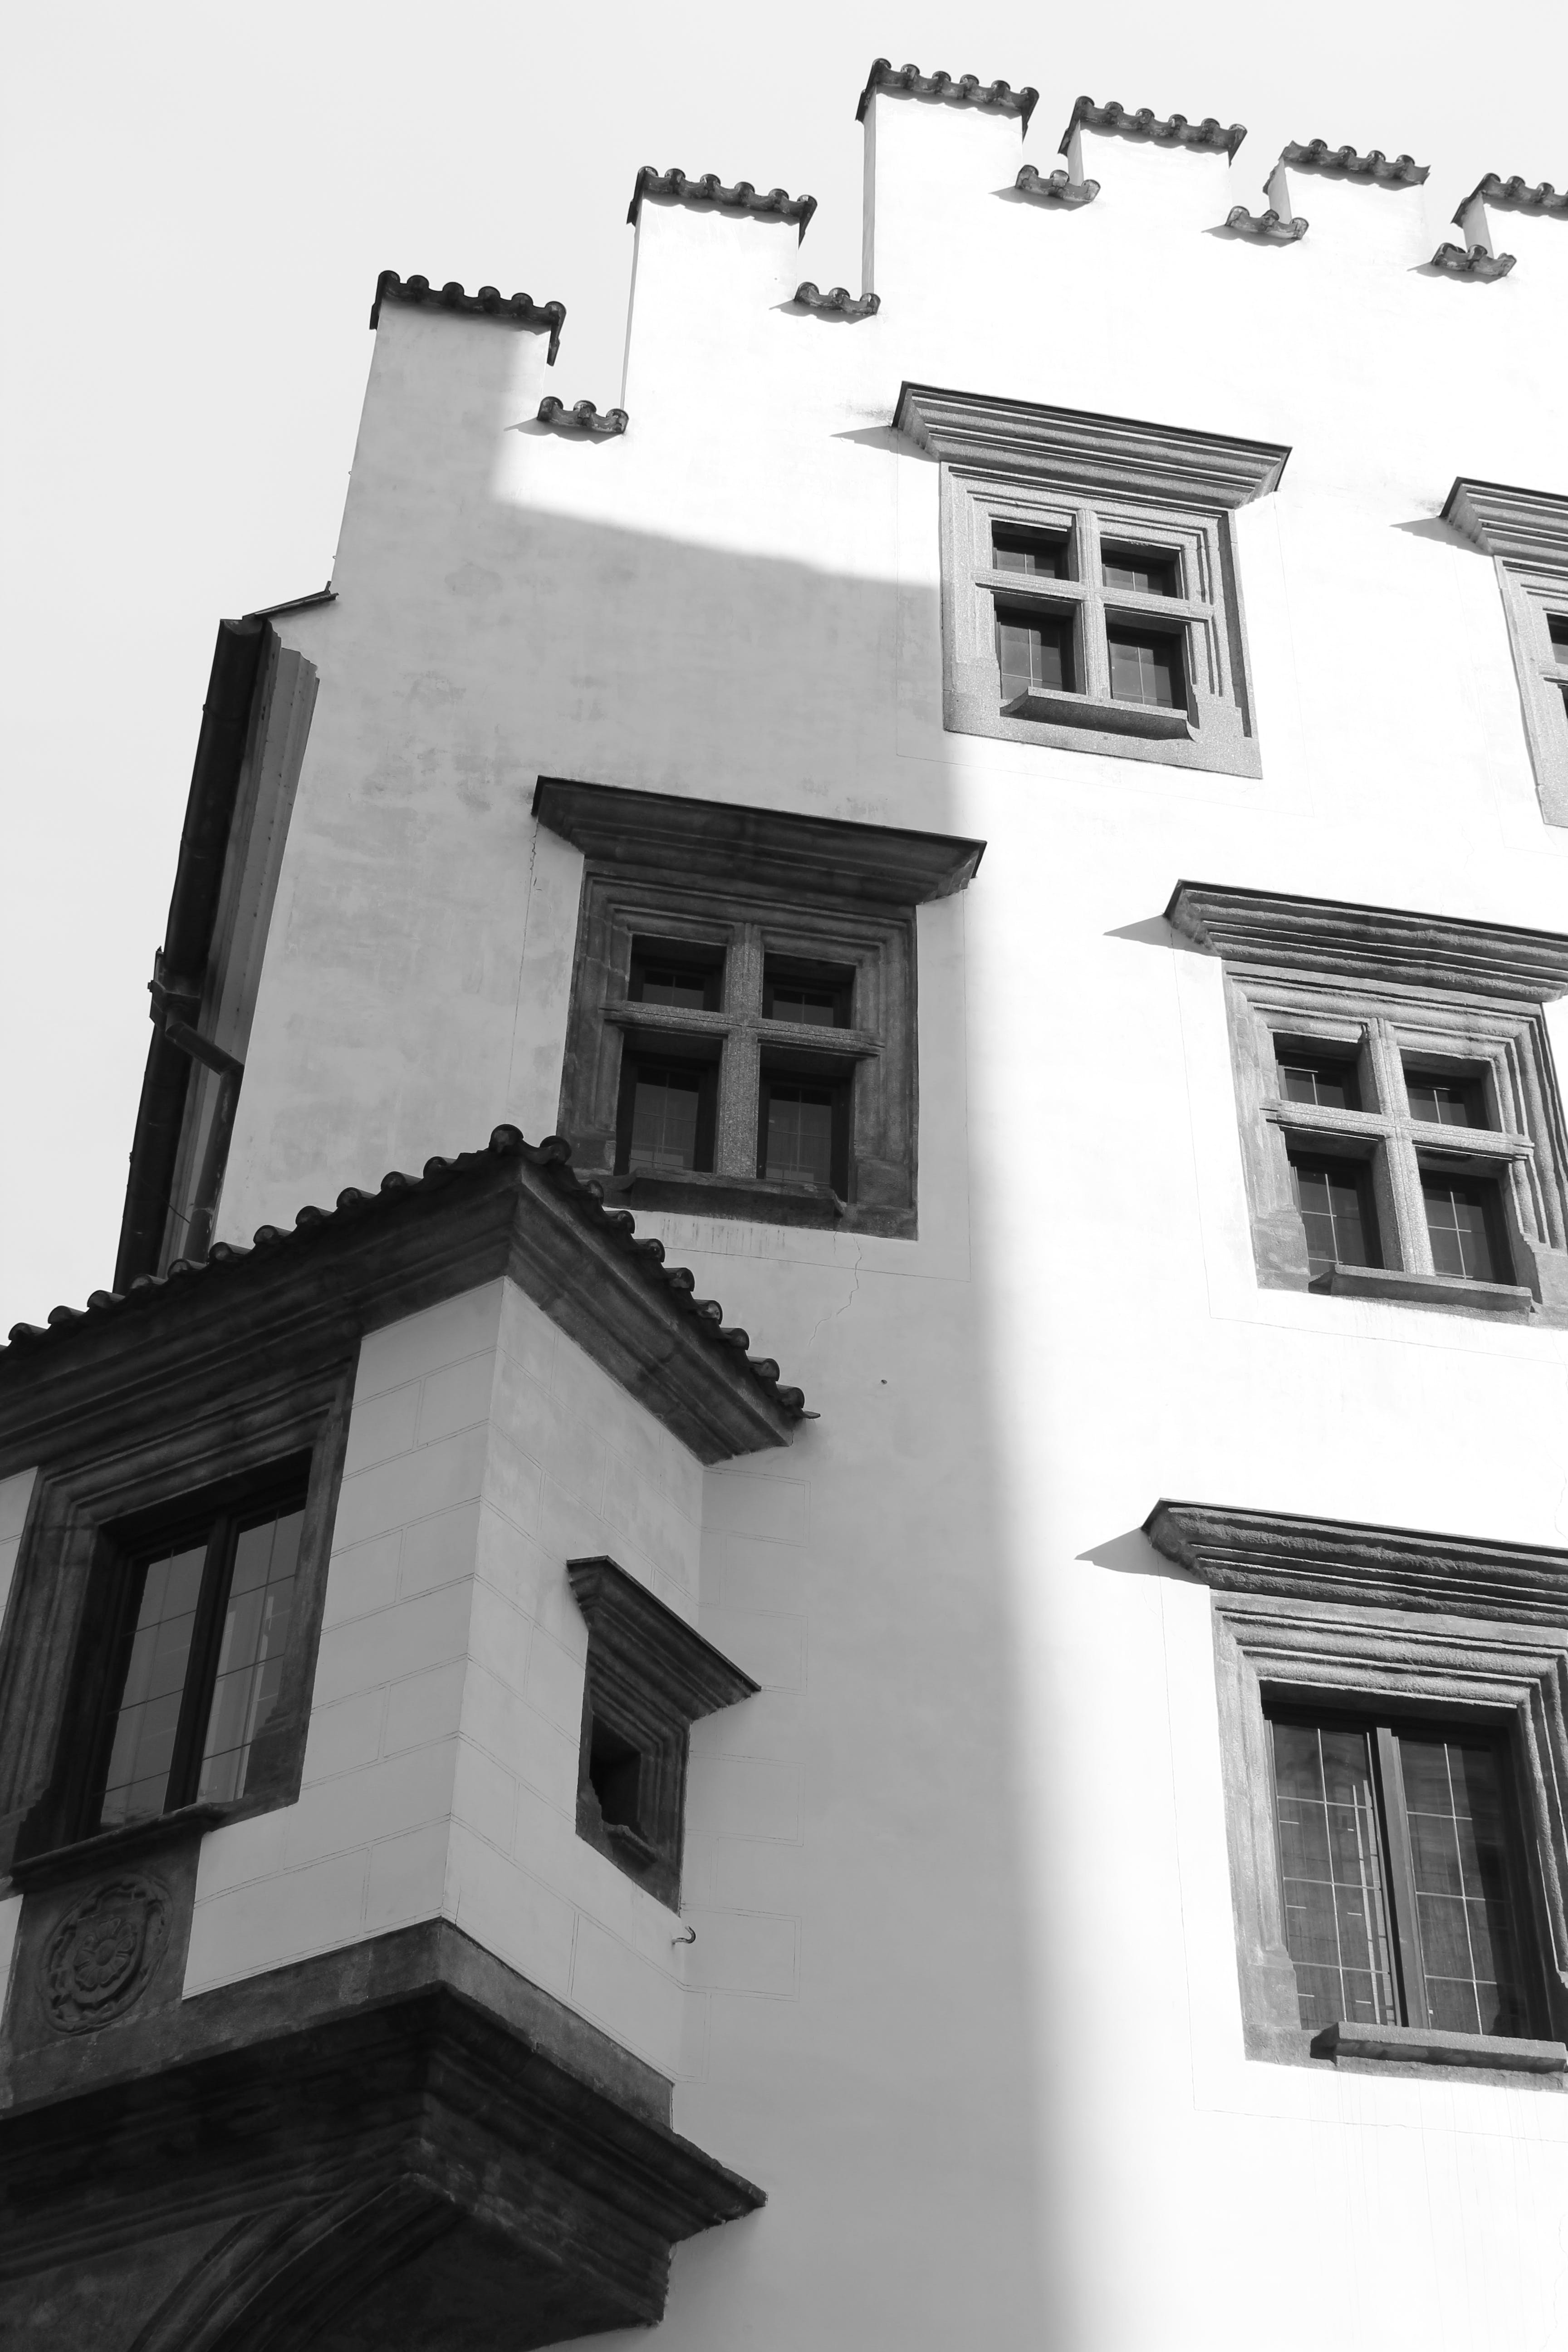 Free stock photo of black-and-white, building, house, architecture